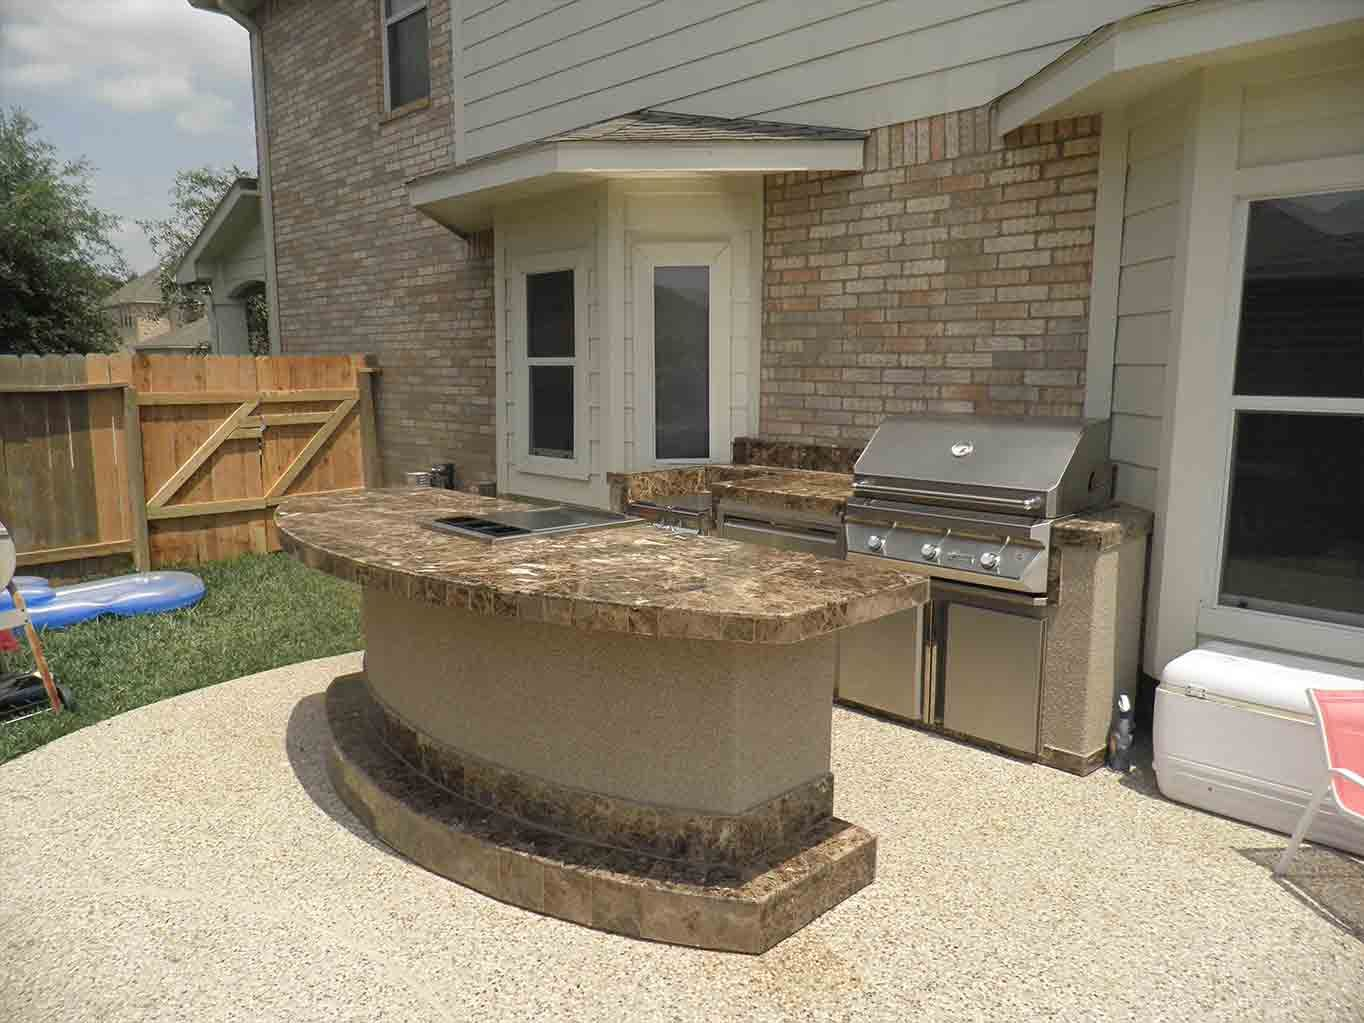 photos of outdoor kitchens and bars ideas outstanding backyard patio with